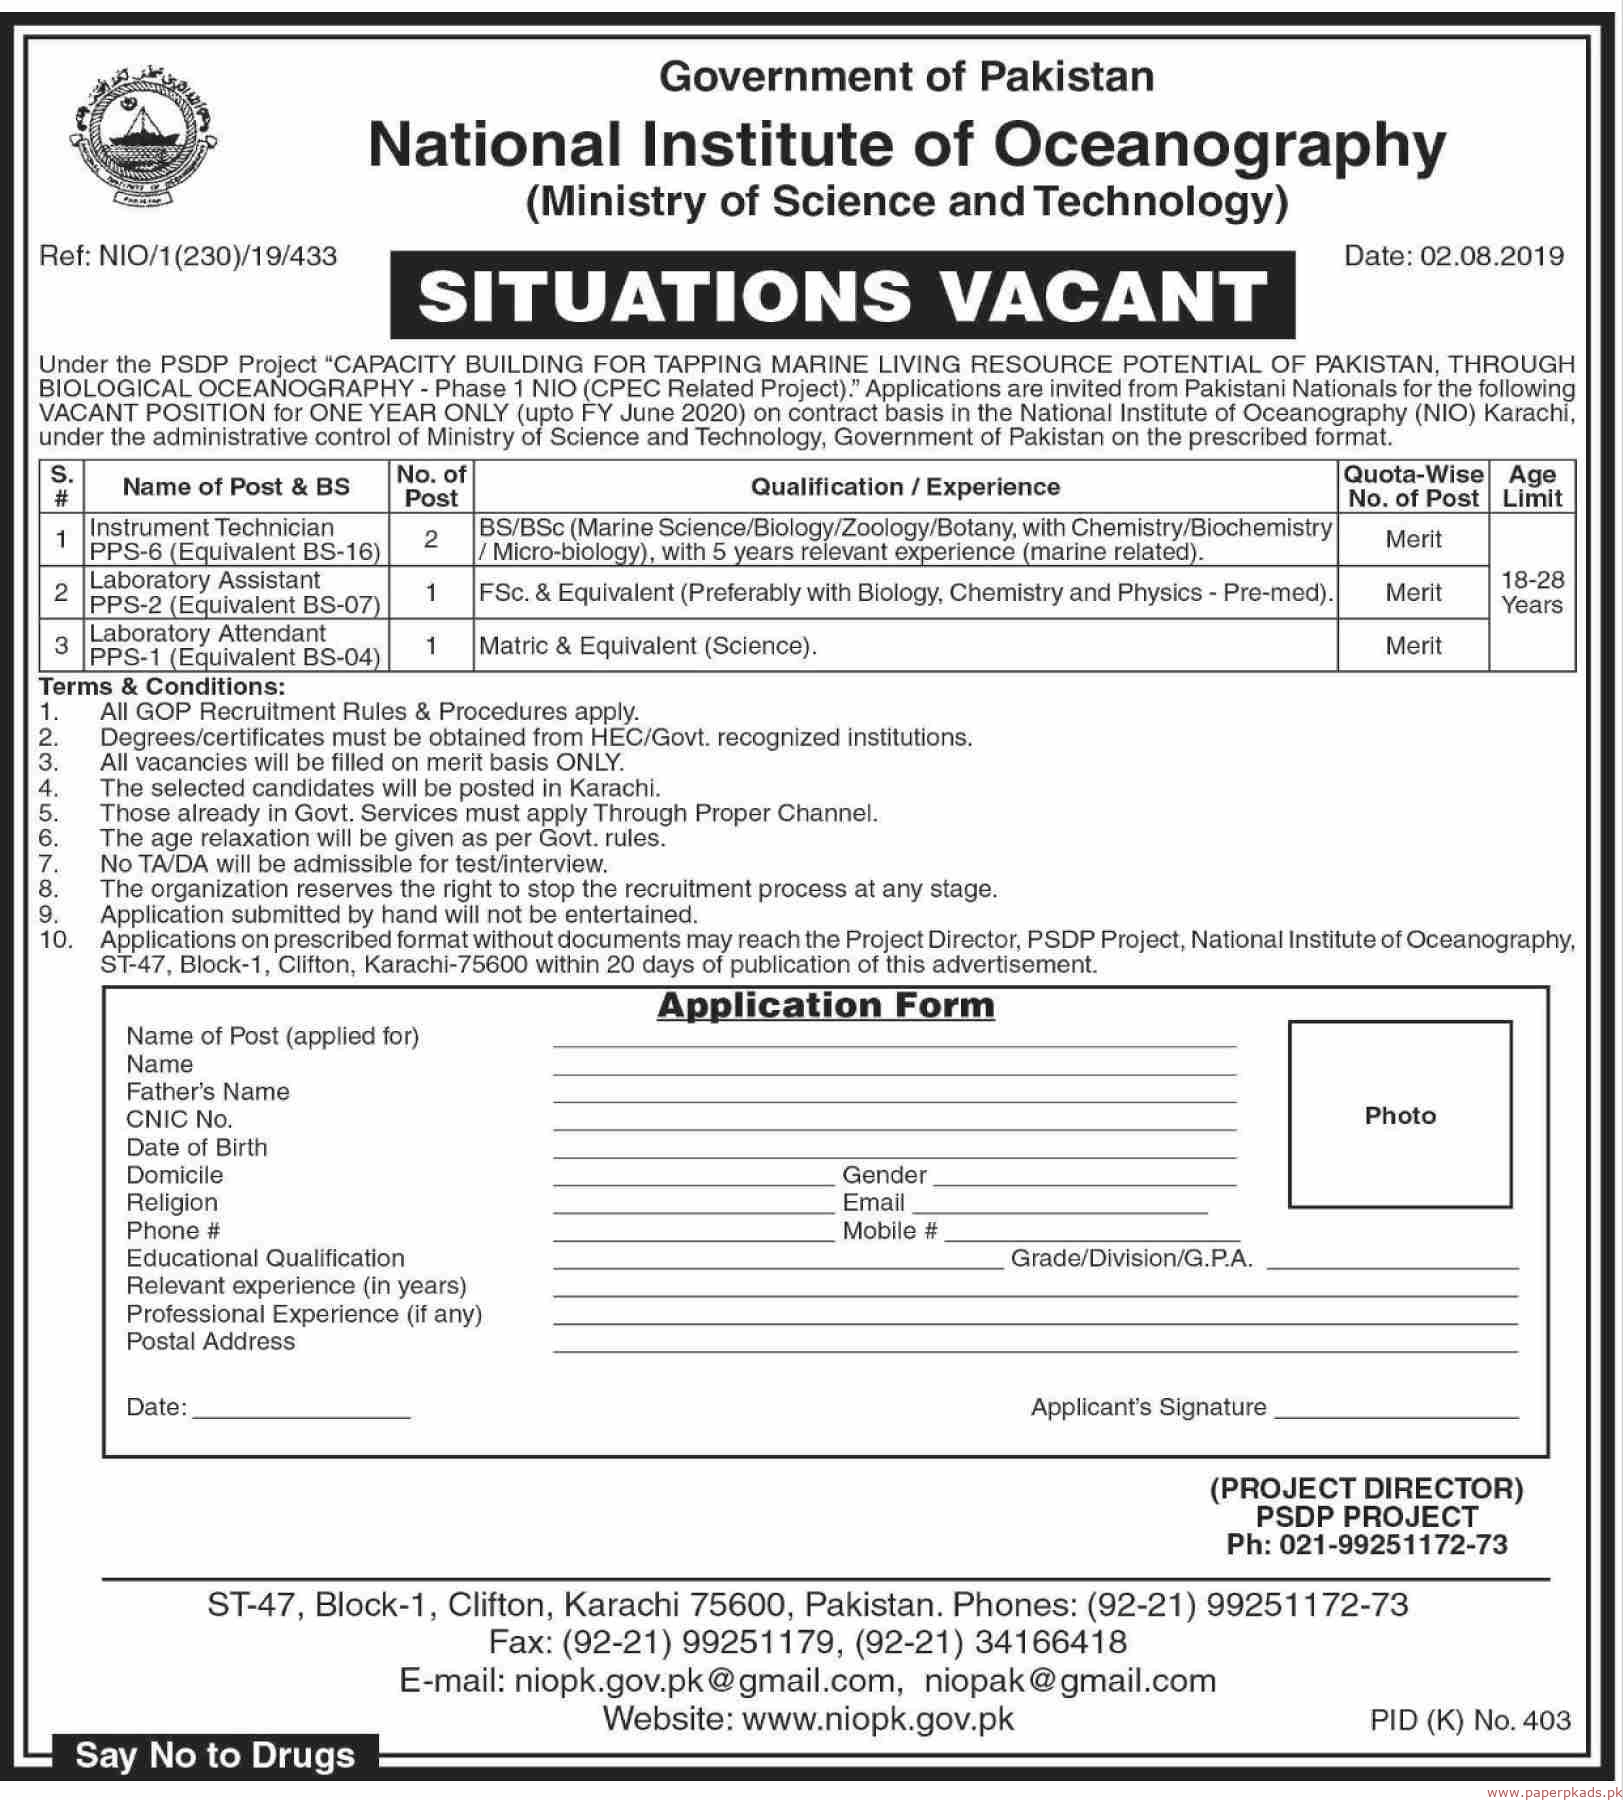 Government of Pakistan National Institute of Oceanography Jobs 2019 Latest